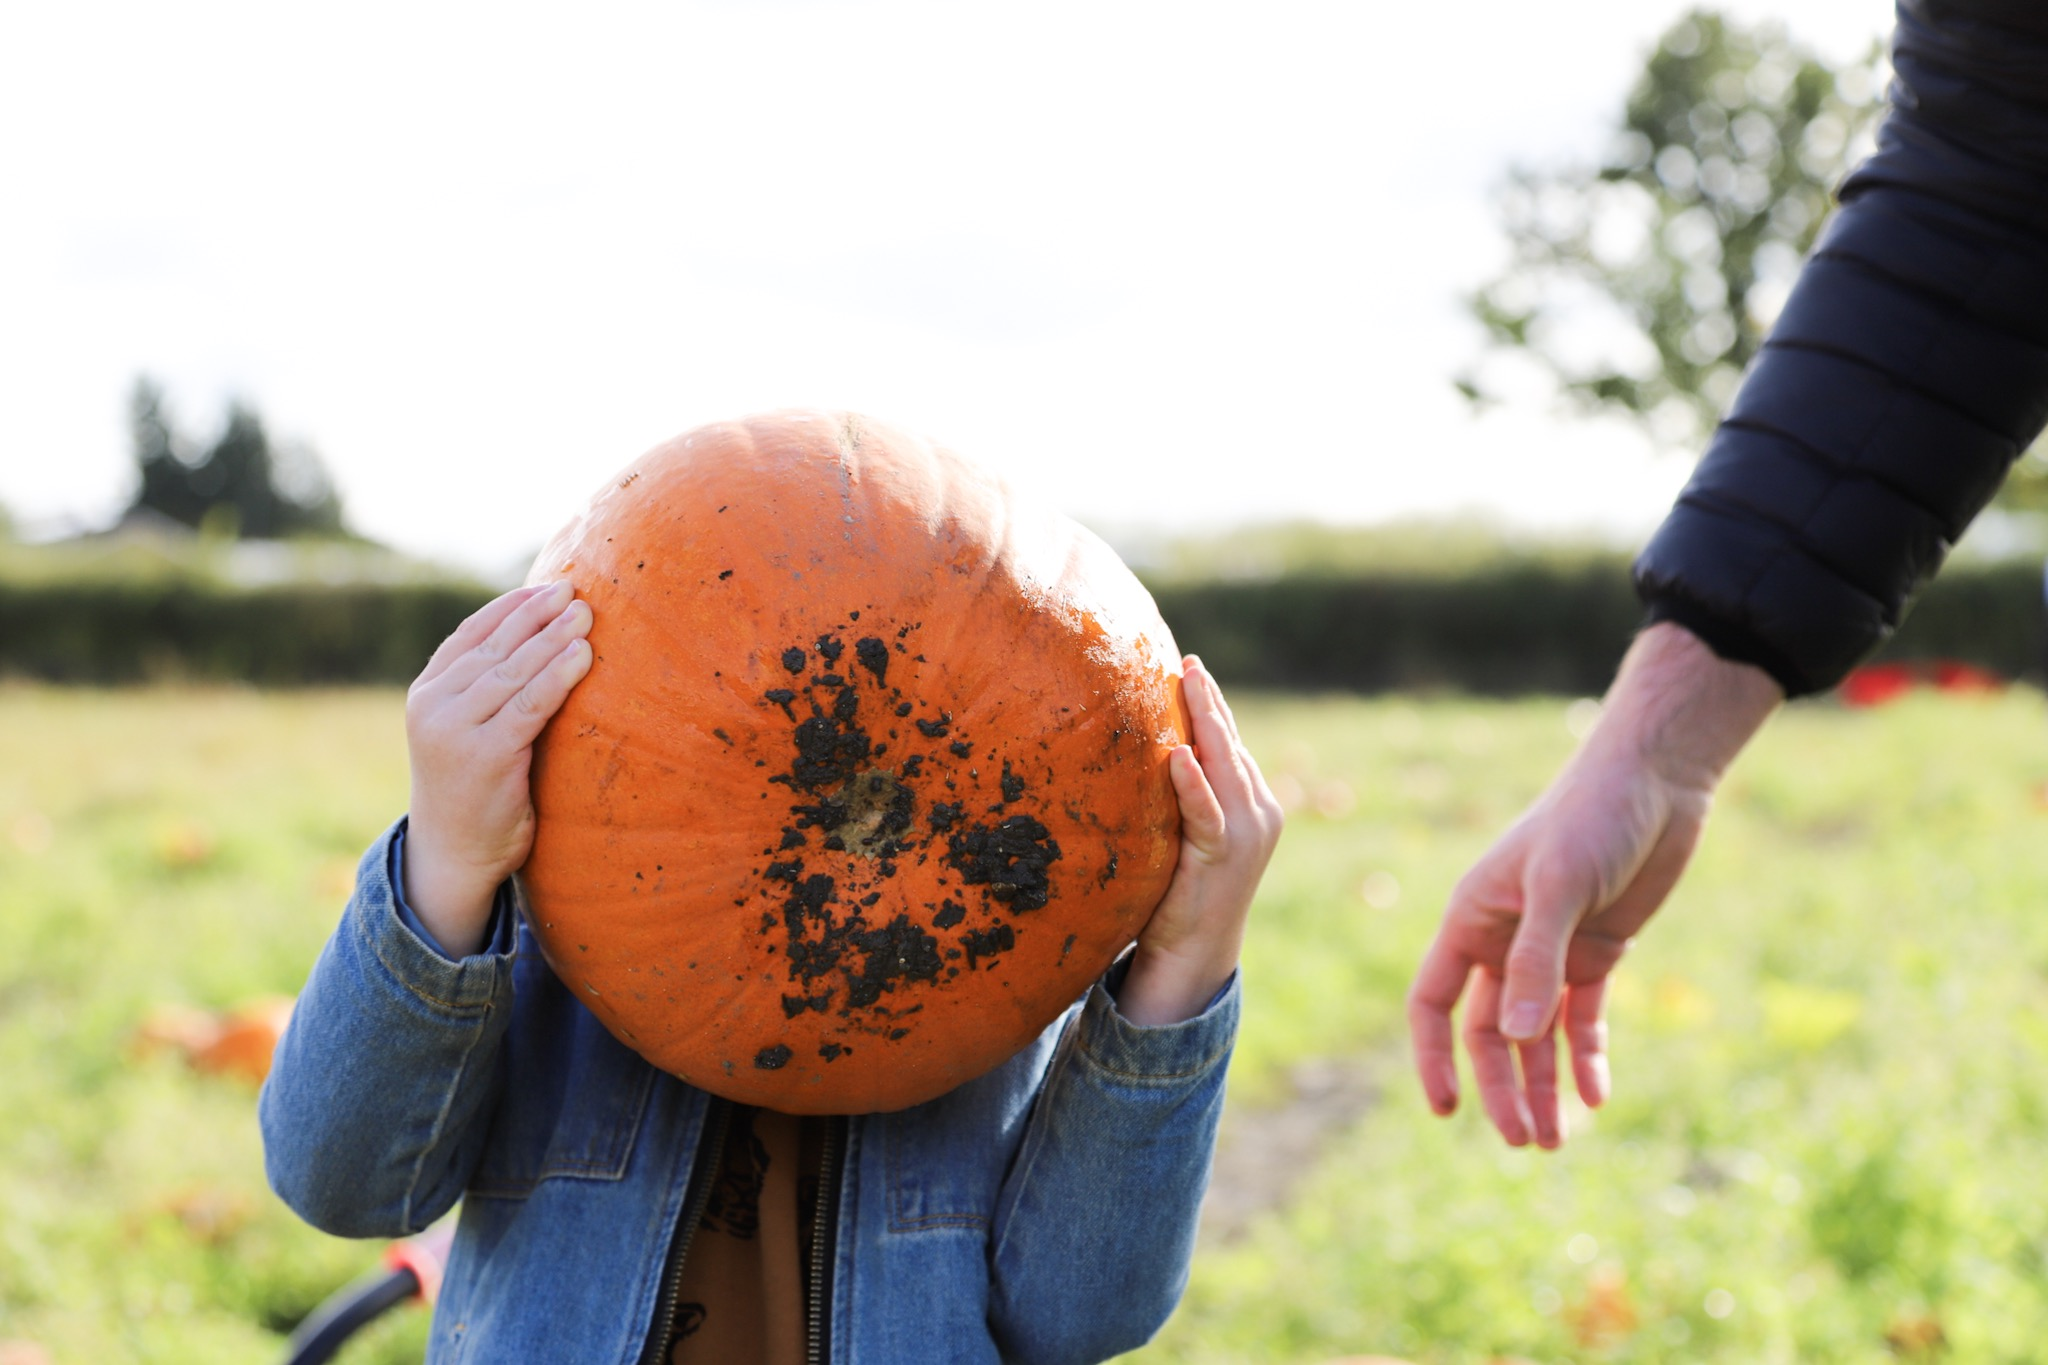 Child holding pumpkin above his face